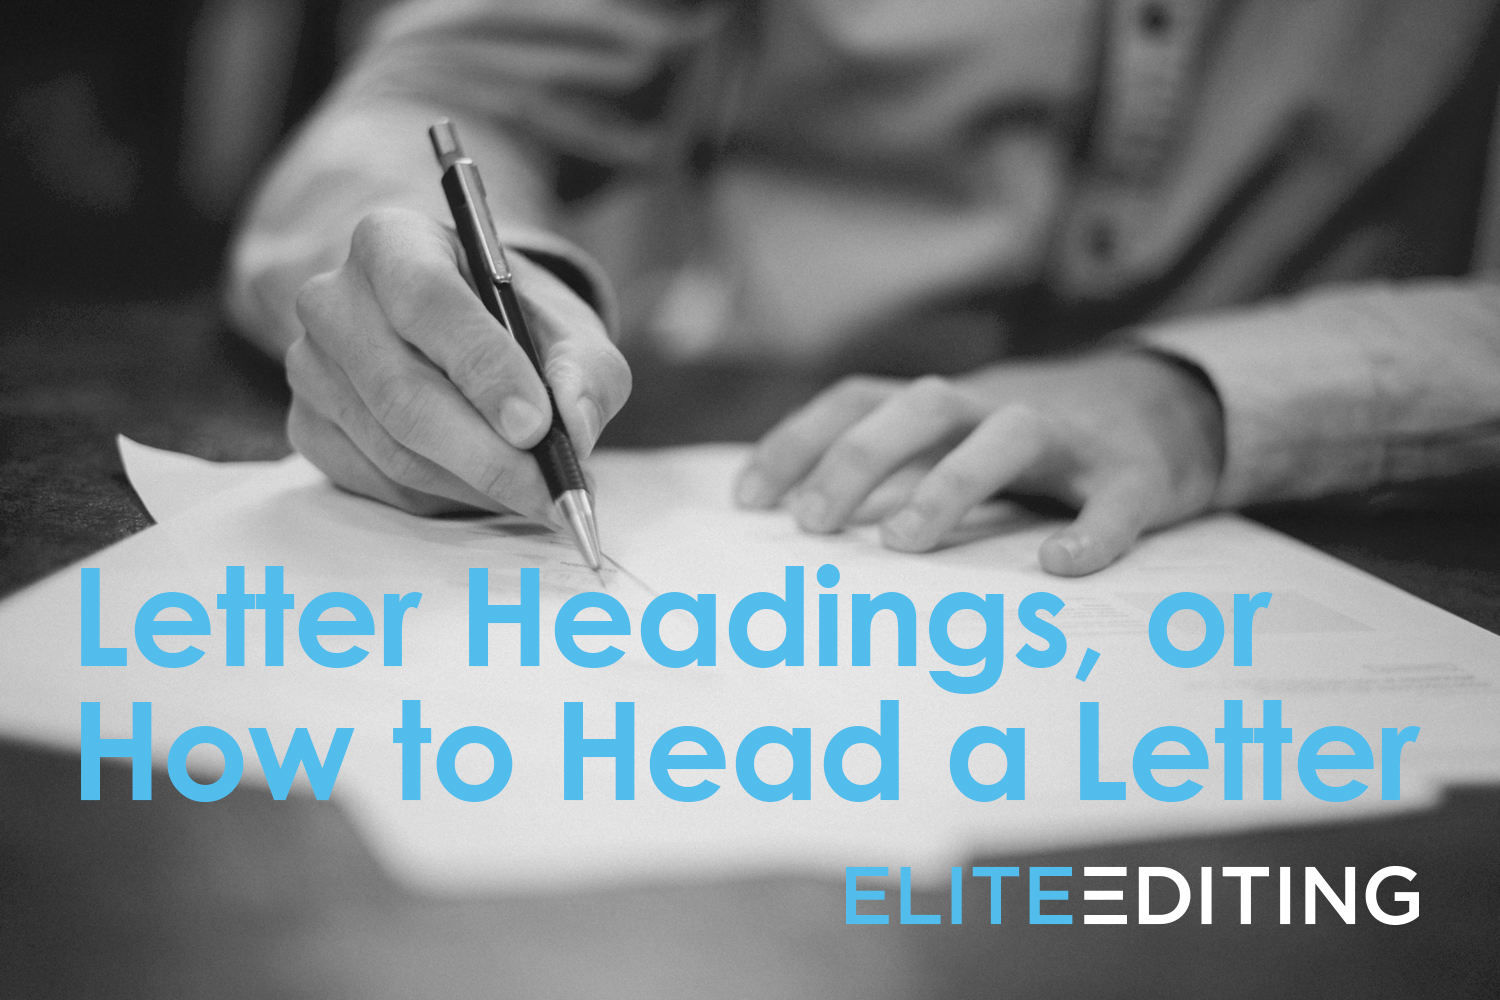 how to head a letter